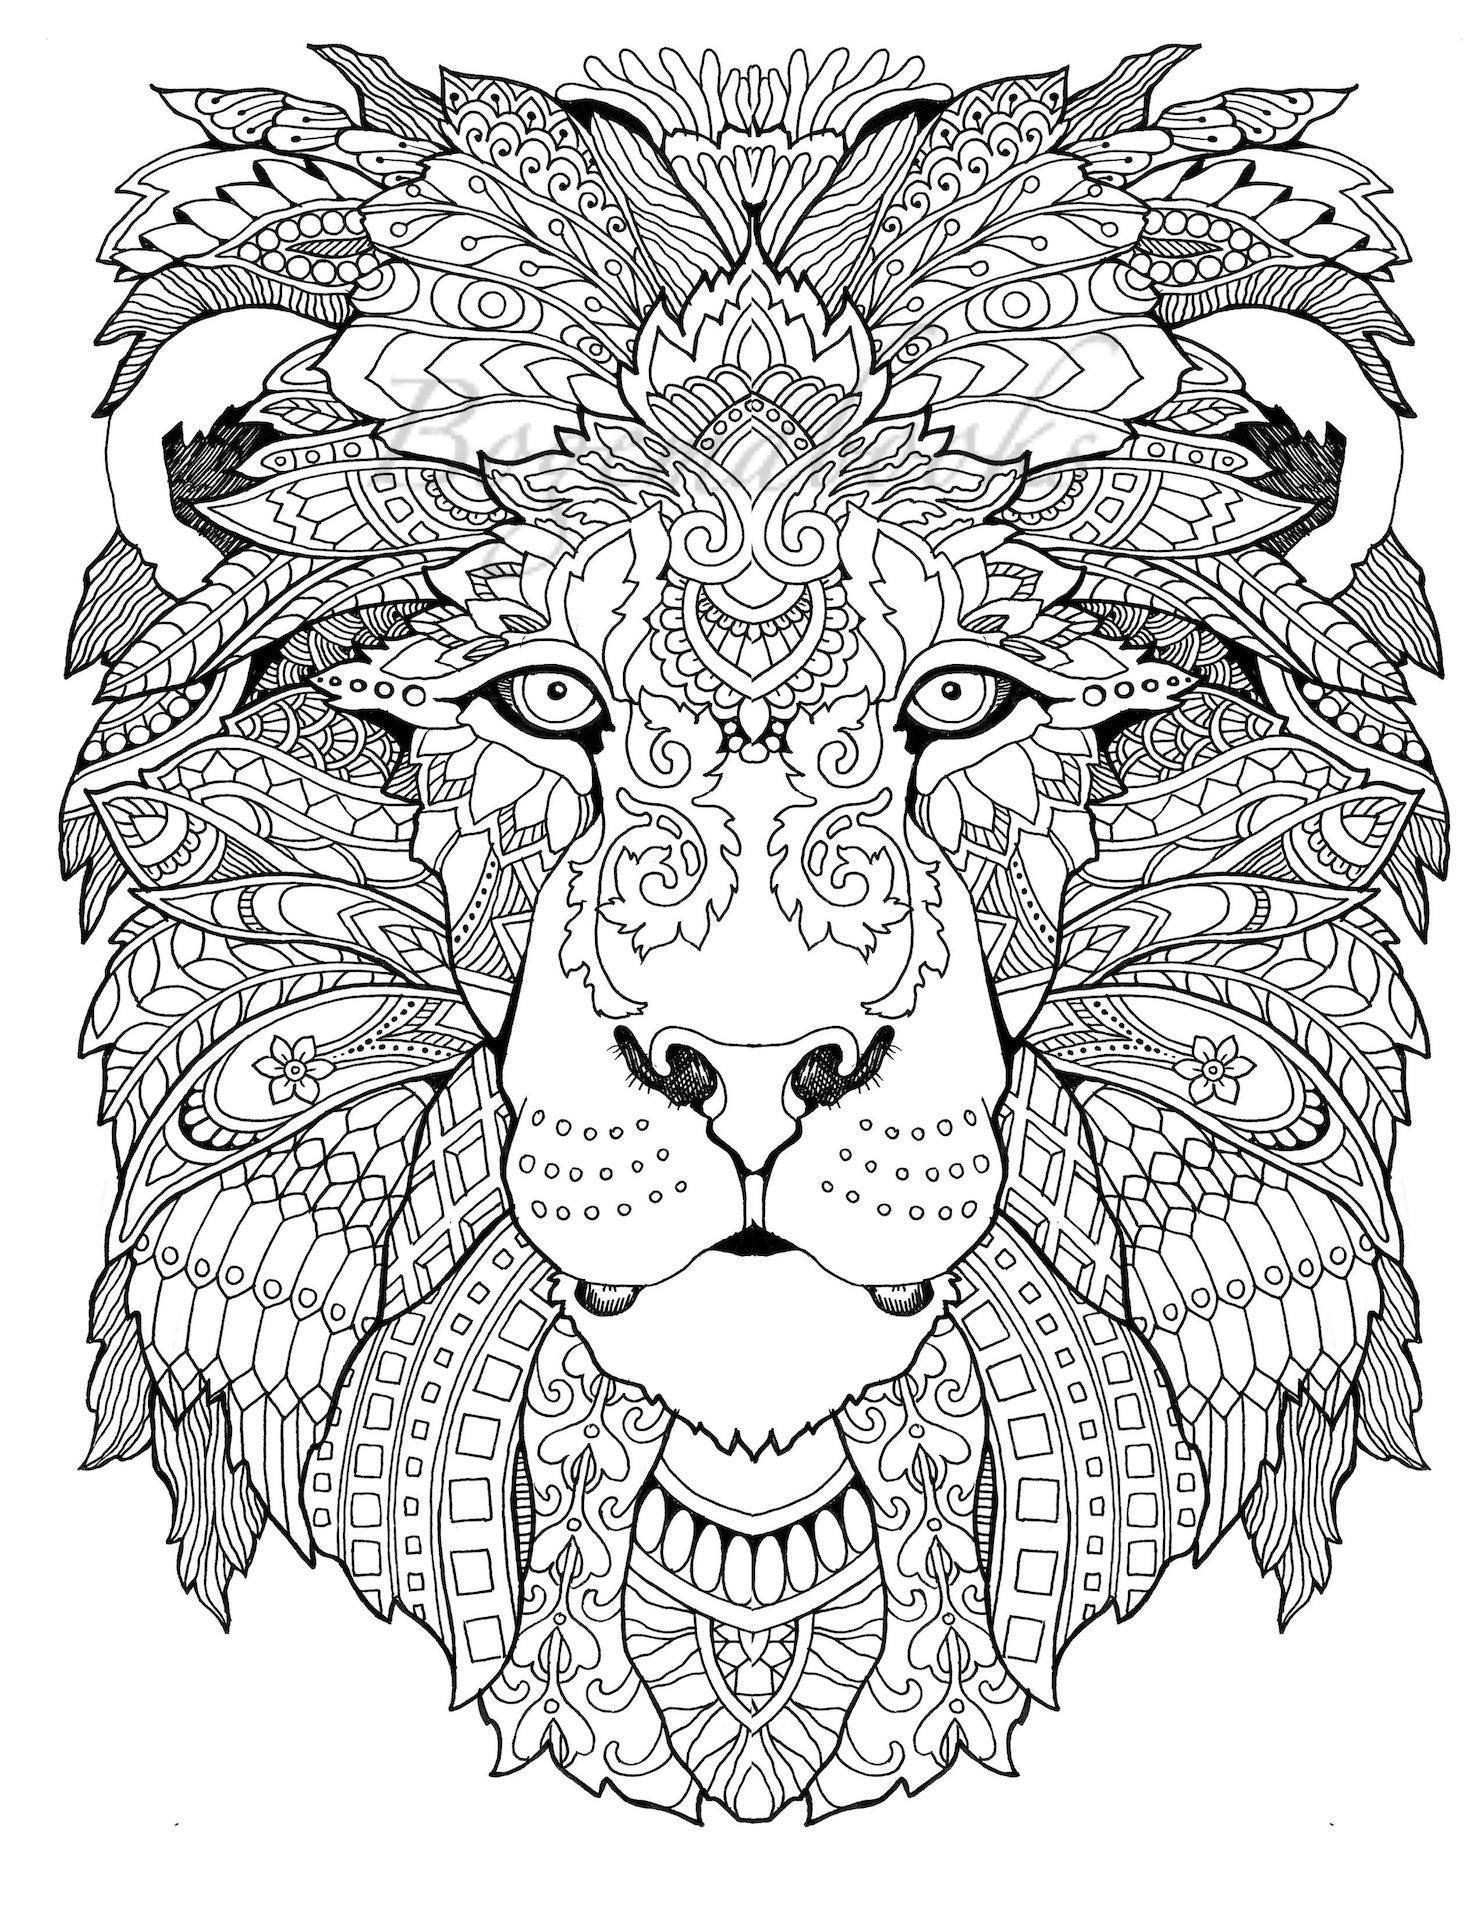 Jungle Coloring Pages Coloring Page Jungle Book Coloring Pages Coloringsuite For Of Page